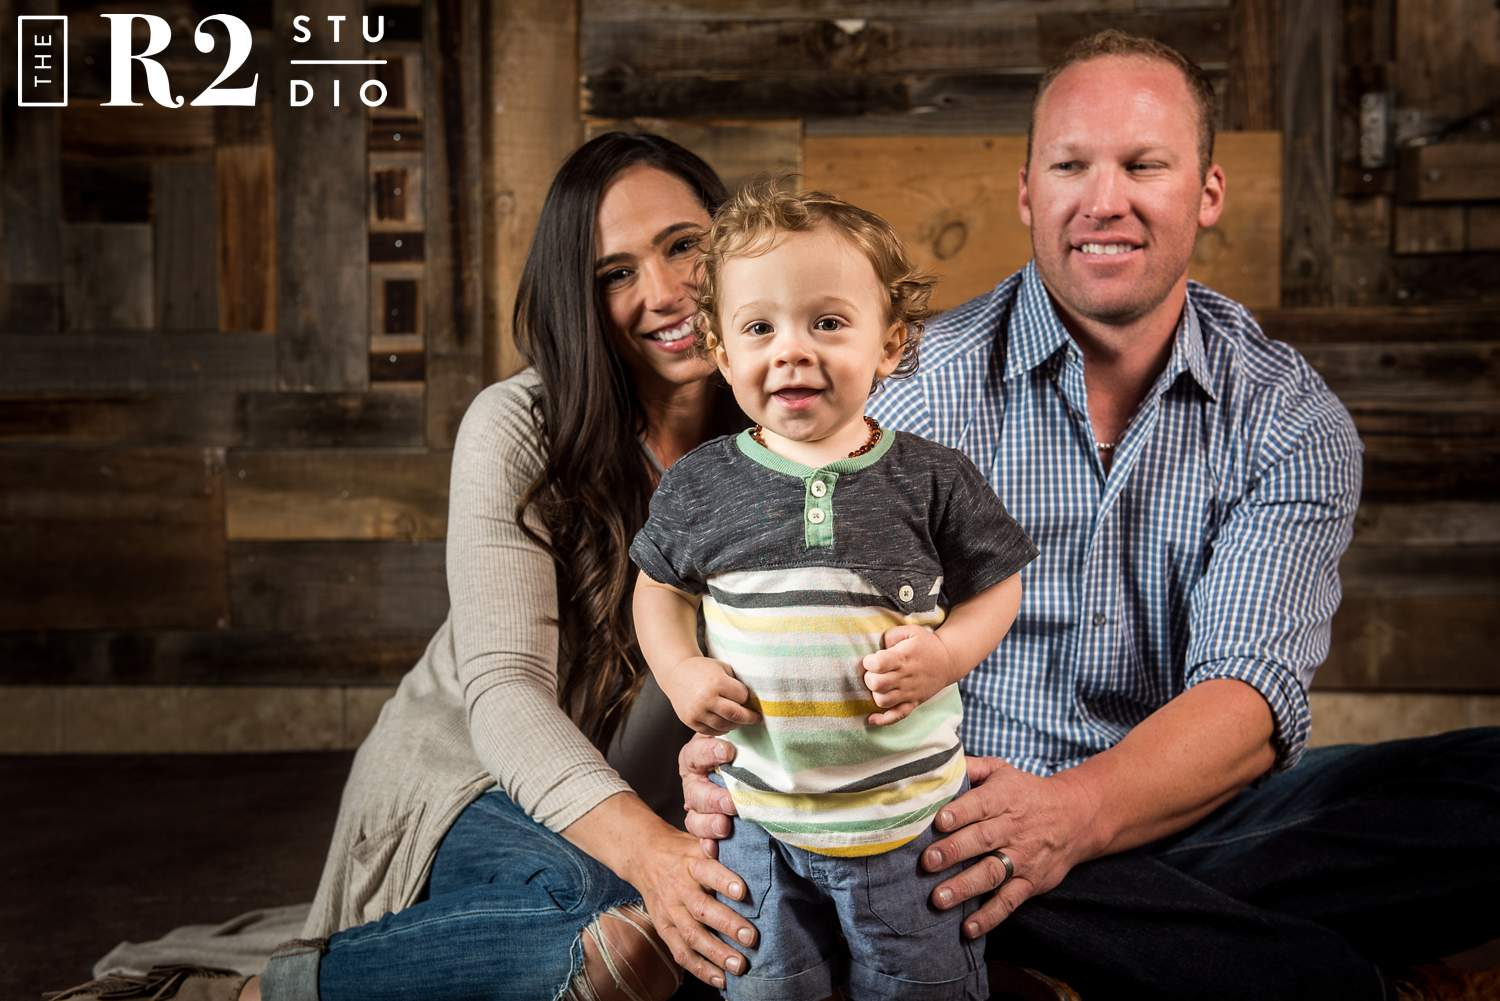 family photos by the r2 studio flagstaff